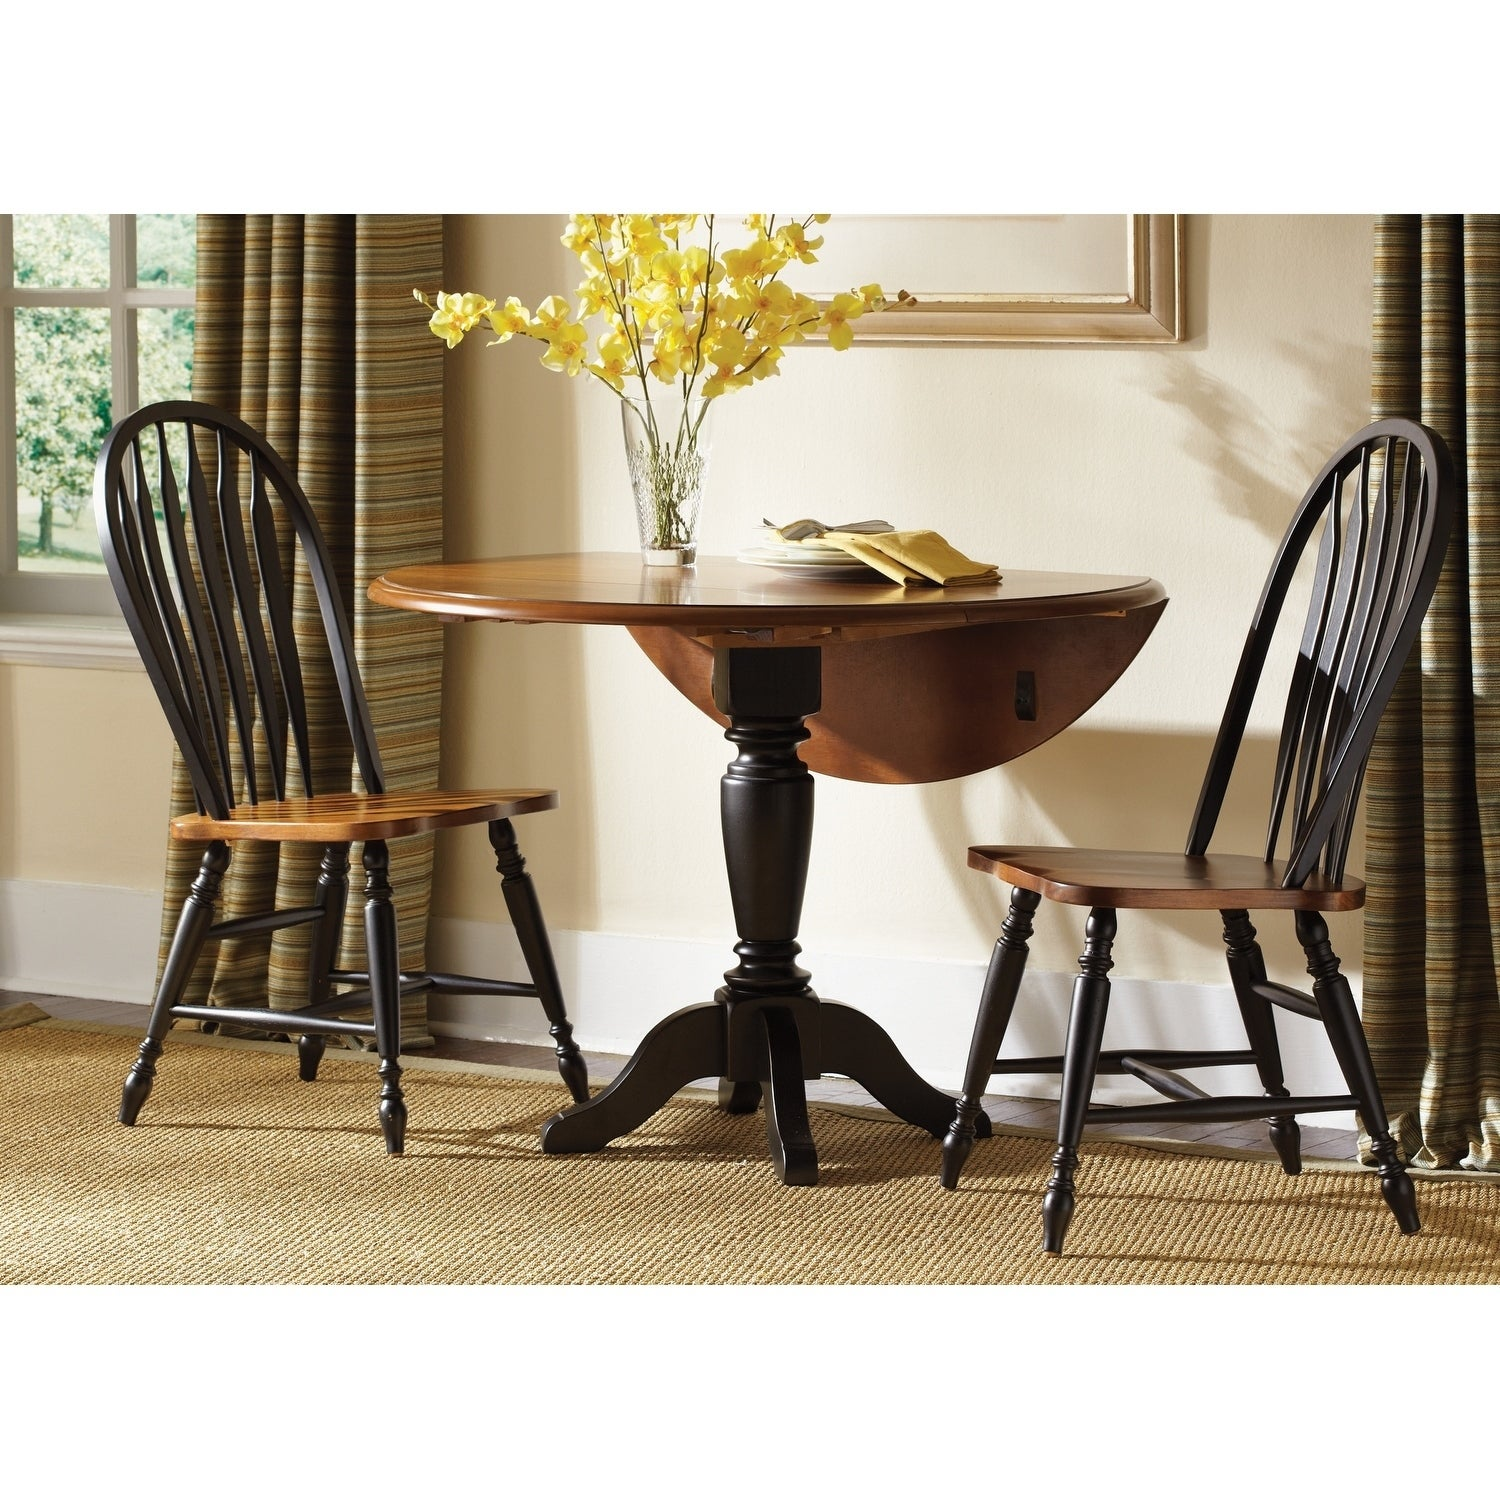 Shop The Gray Barn Buttercup Hill Black And Bronze Round Drop Leaf